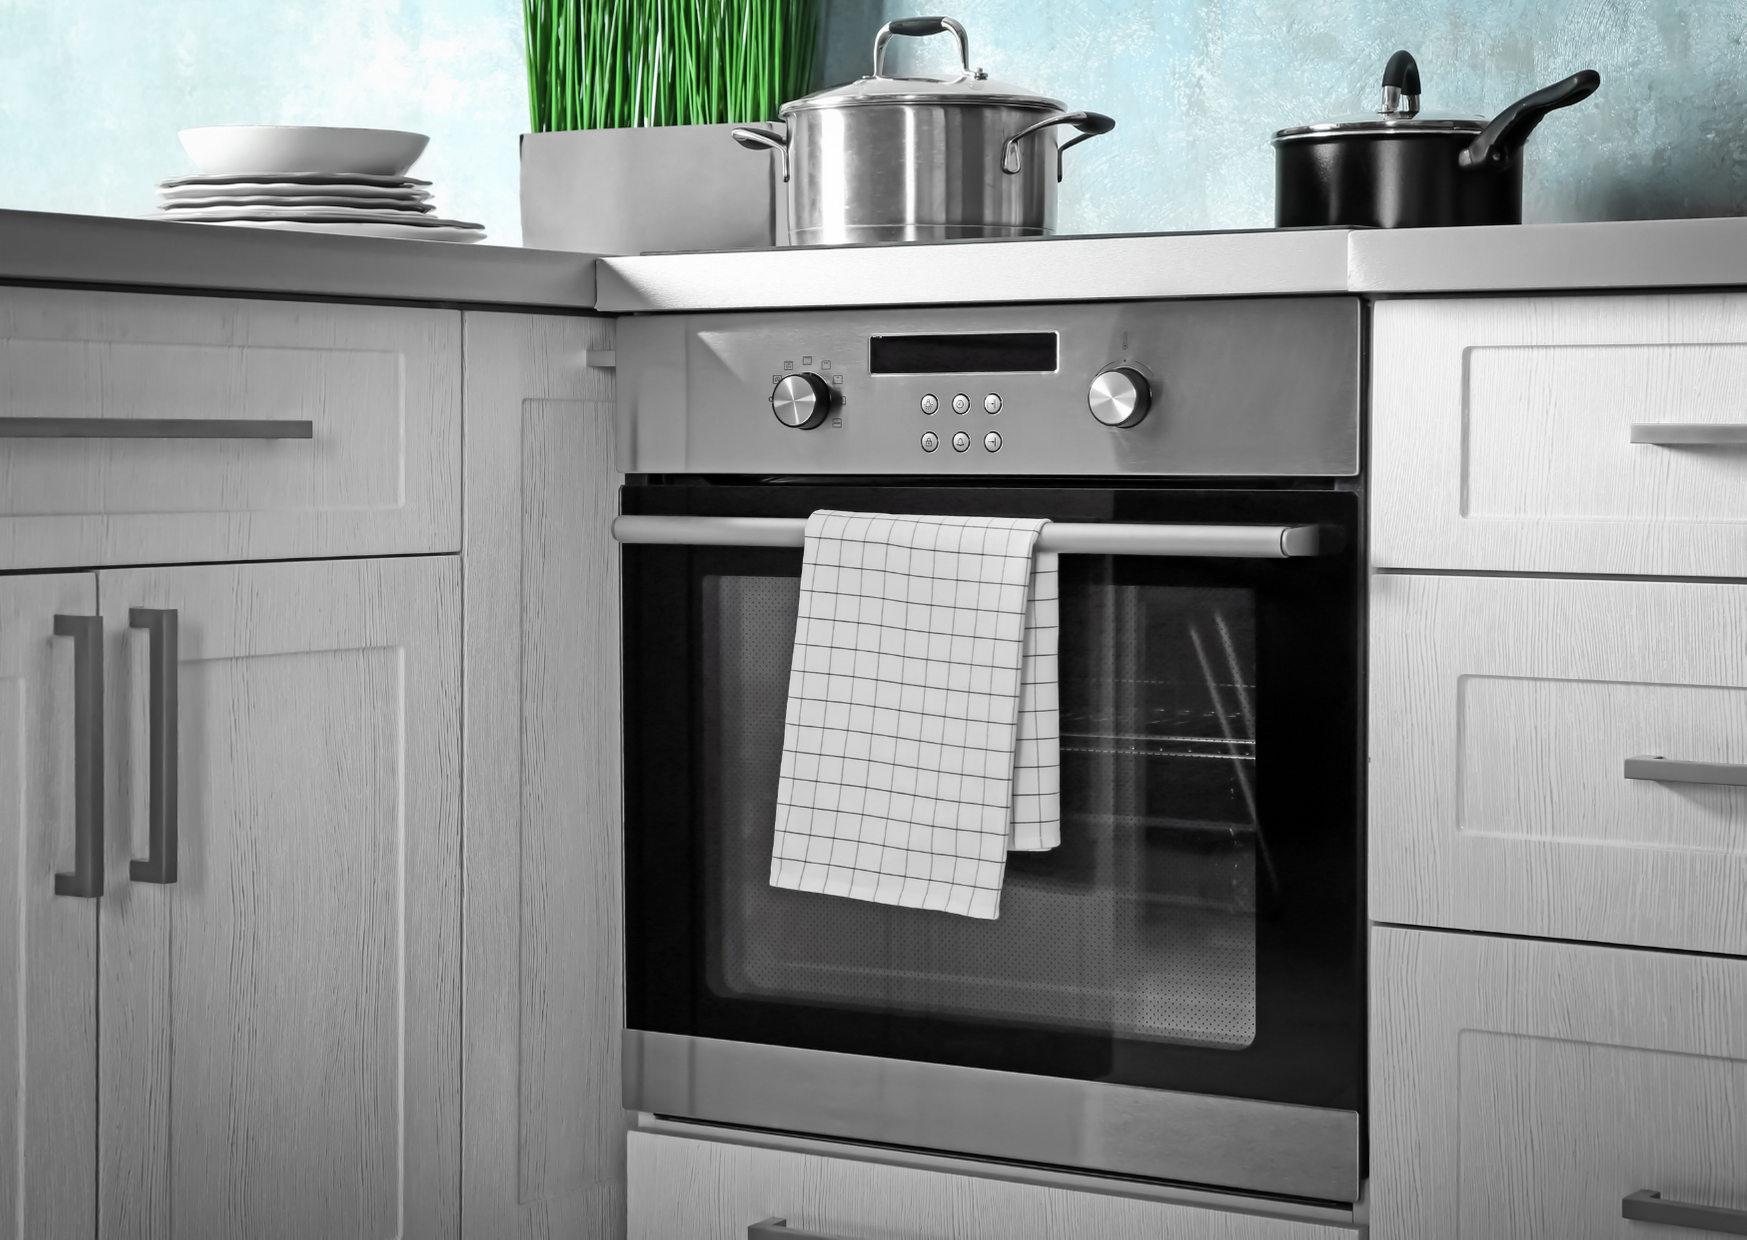 Photo of Gas oven in kitchen